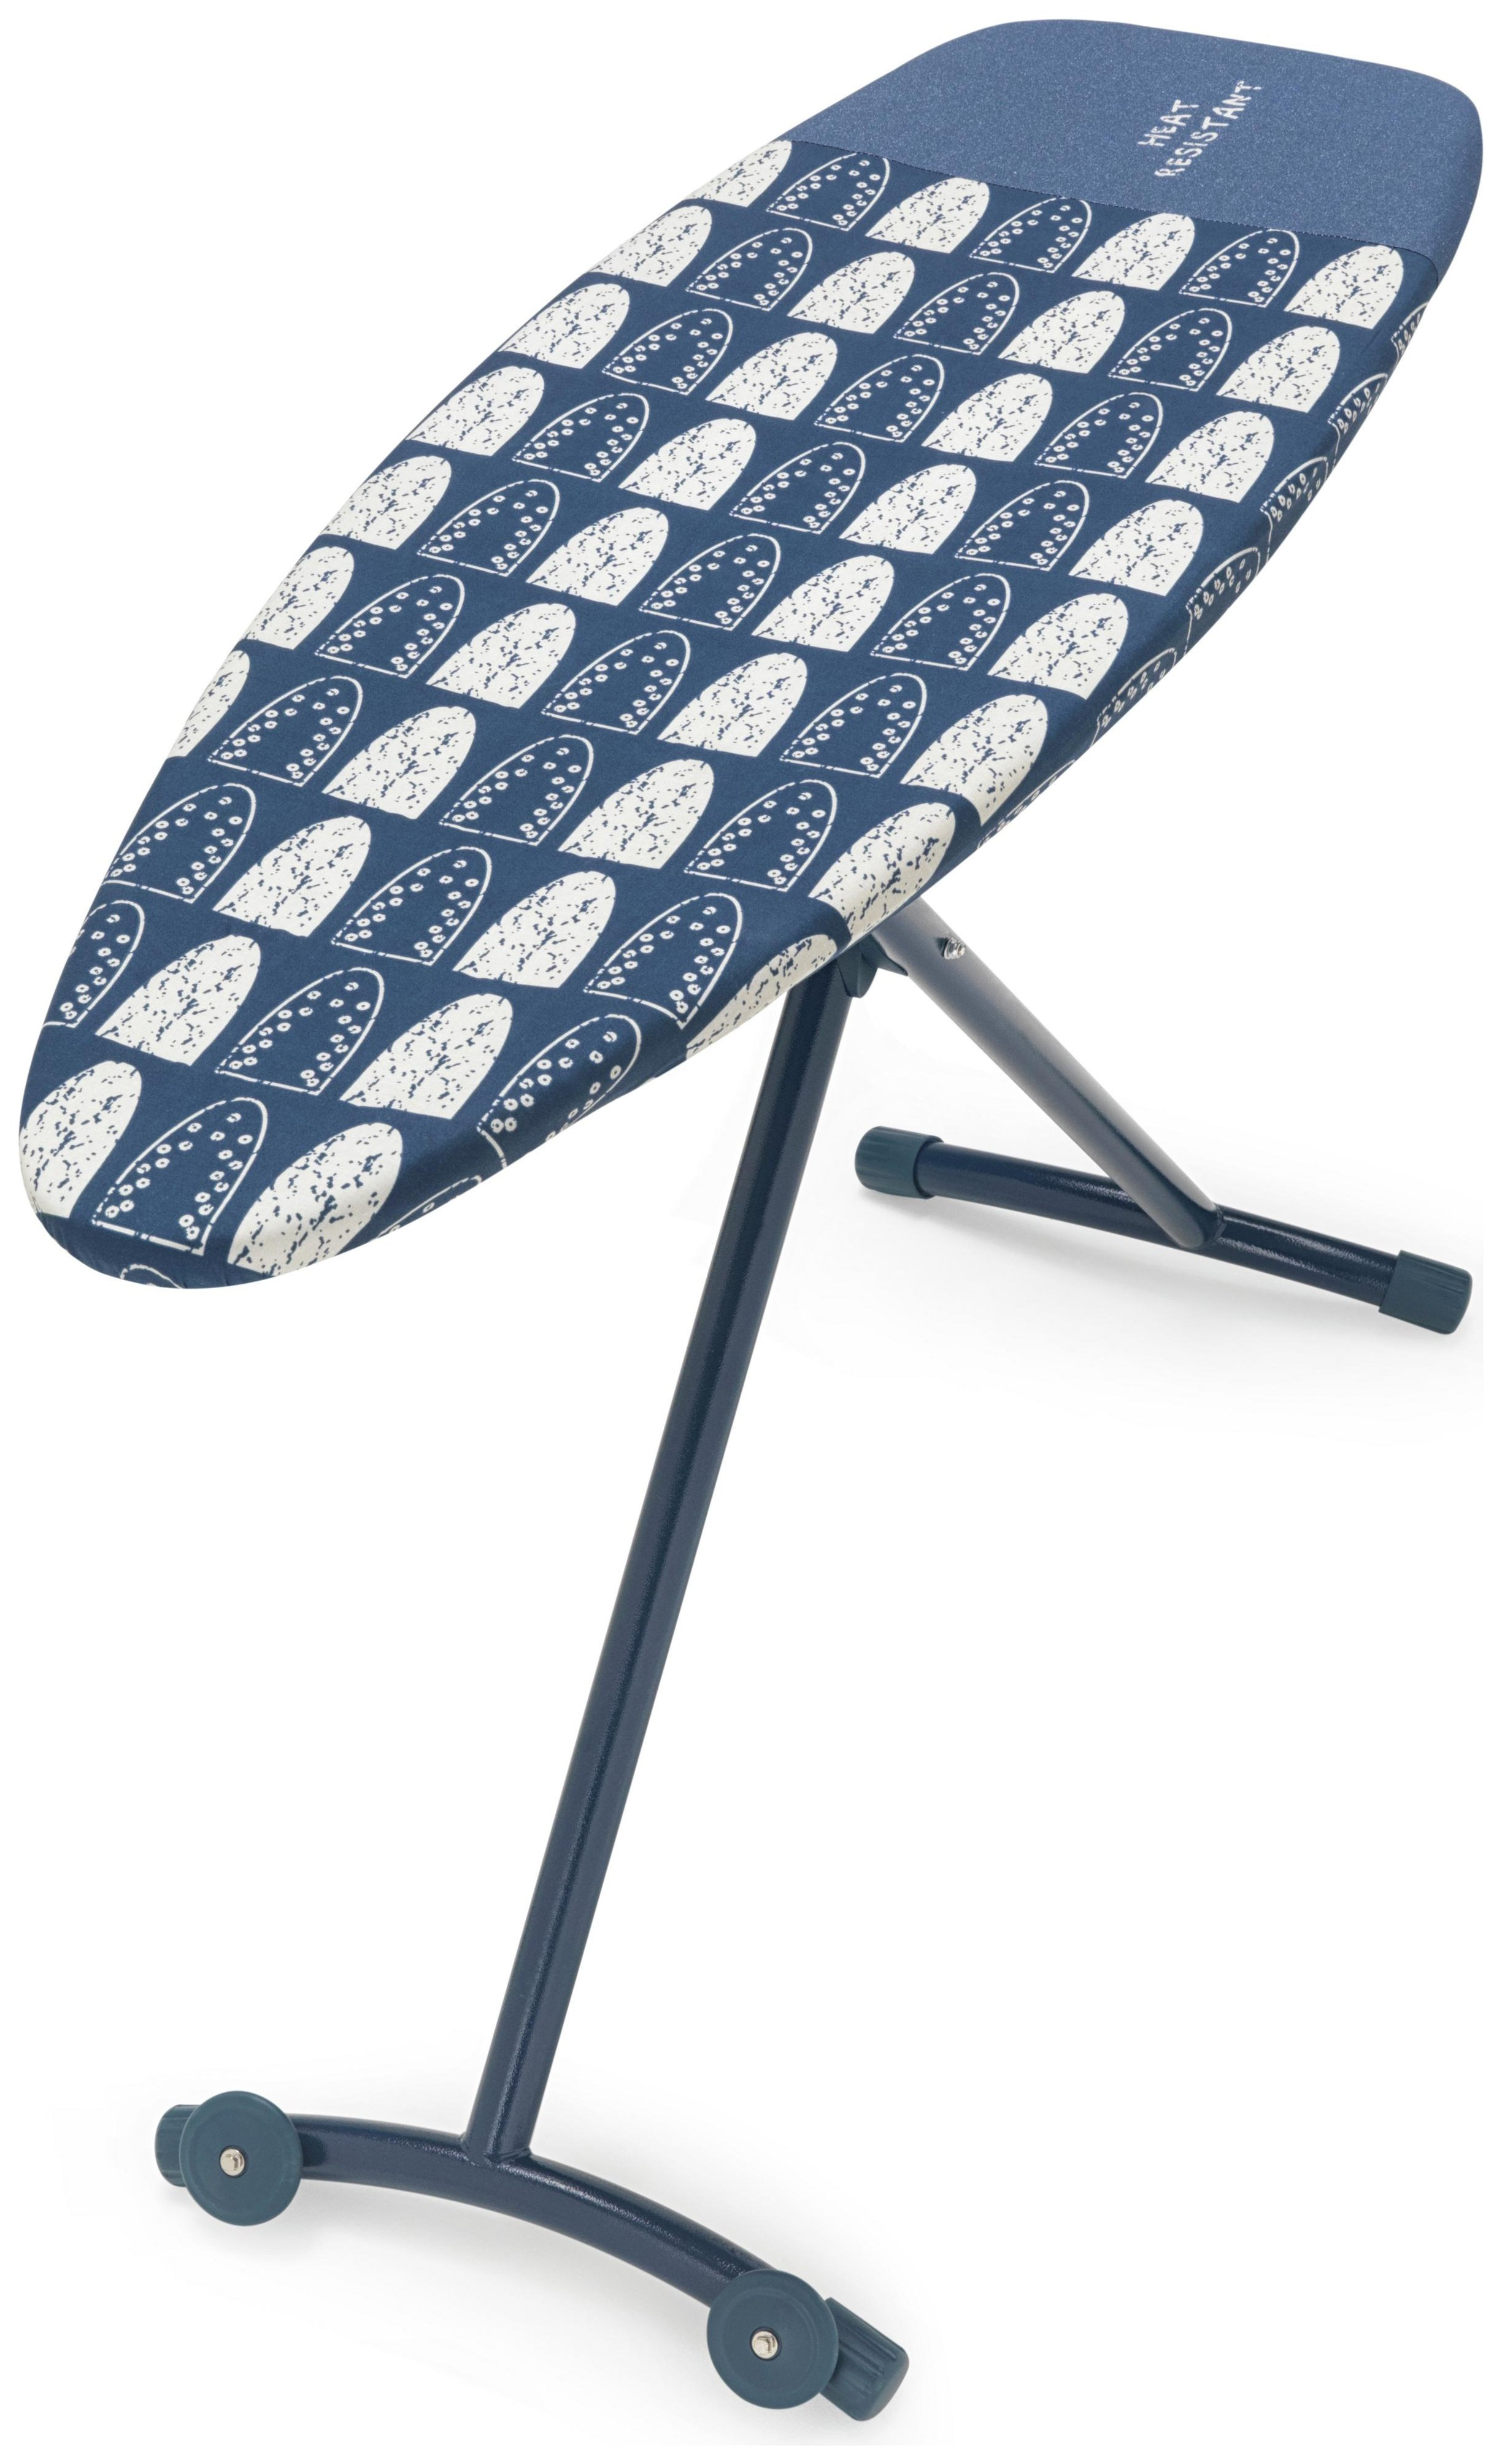 addis deluxe ironing board cover reviews. Black Bedroom Furniture Sets. Home Design Ideas